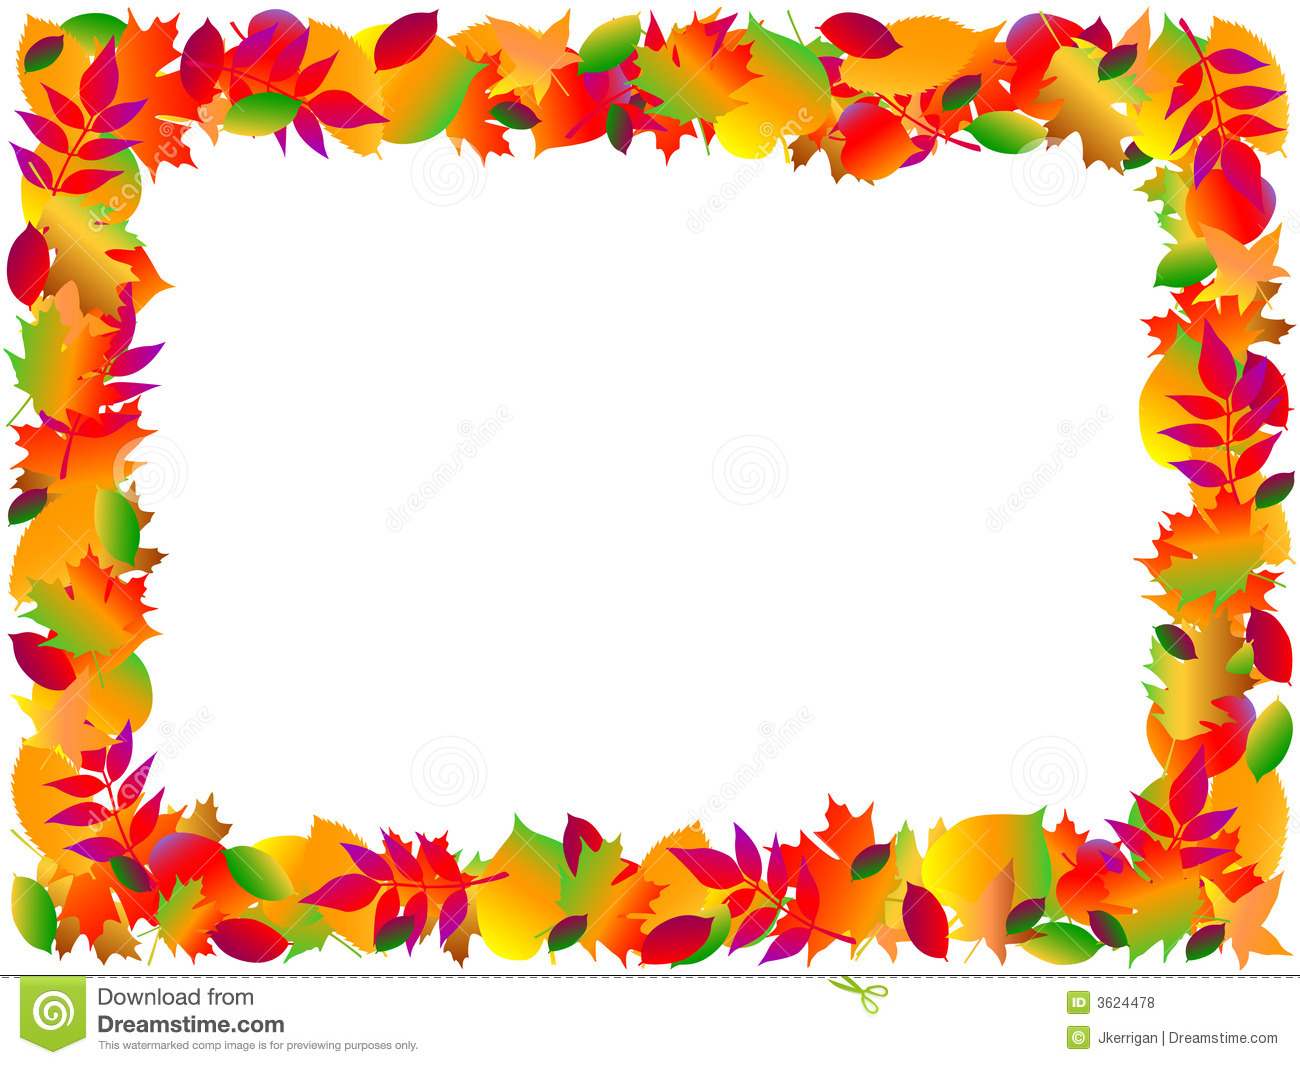 Harvest Frame Royalty Free Stock Photos   Image  3624478